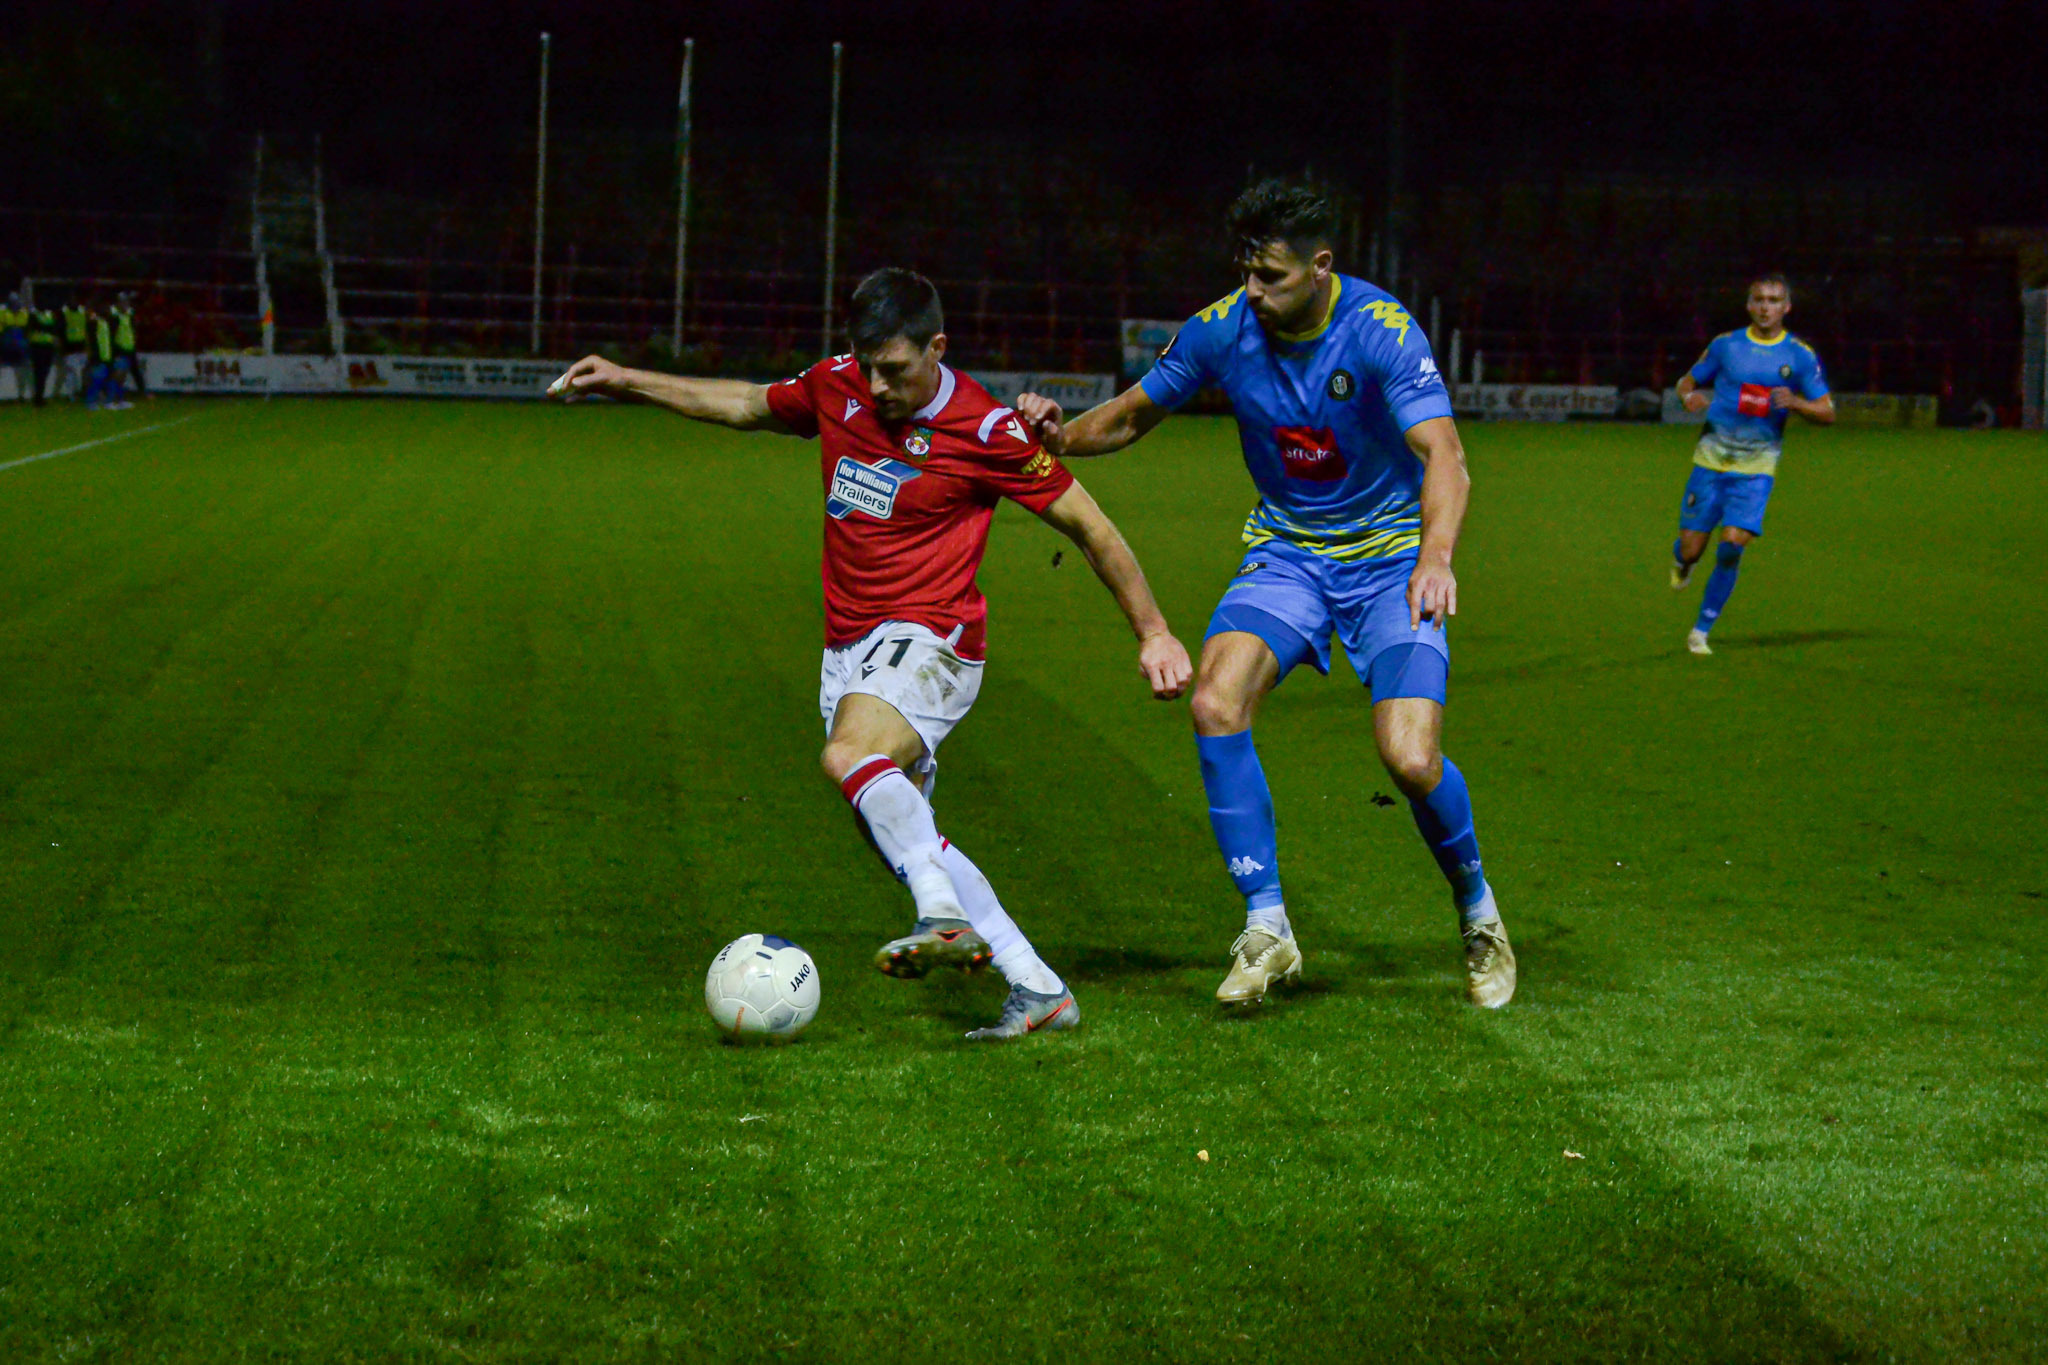 Wrexham AFC striker Bobby Grant says it is somebody else's turn from the penalty spot